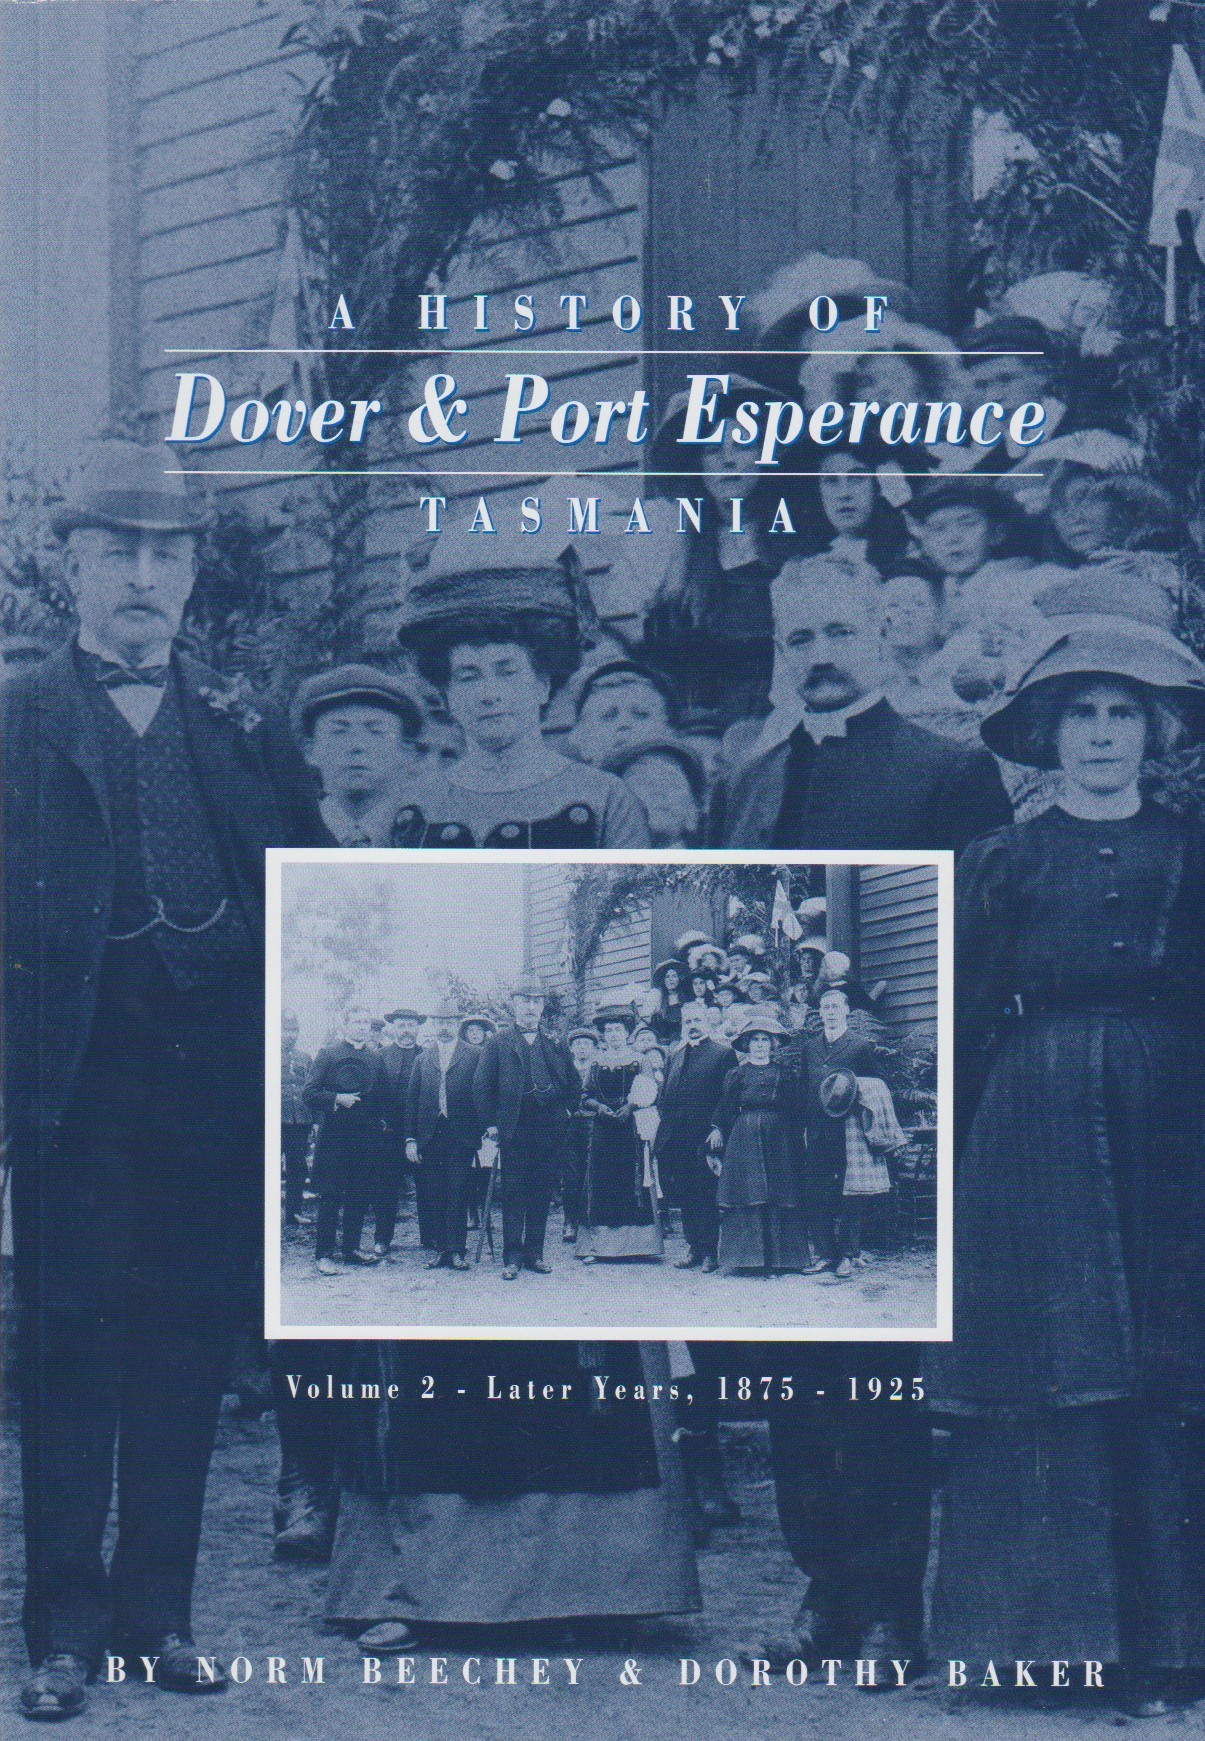 A History of Dover & Port Esperance, Tasmania - Volume 2 Later Years, 1875-1925